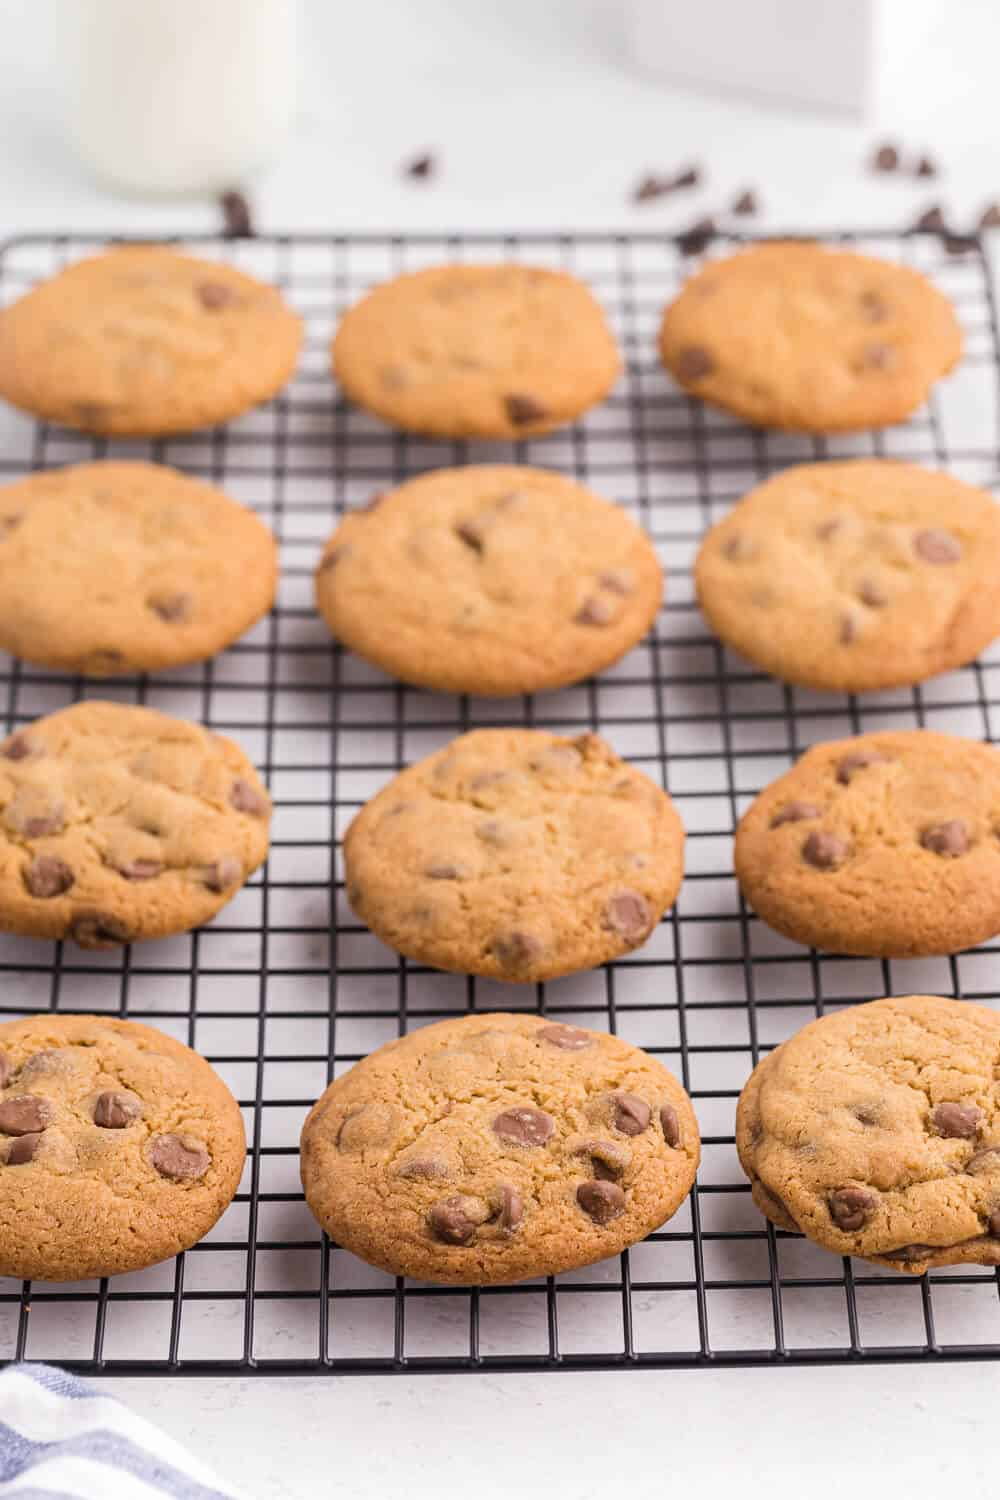 chocolate chip cookies on a wire baking rack